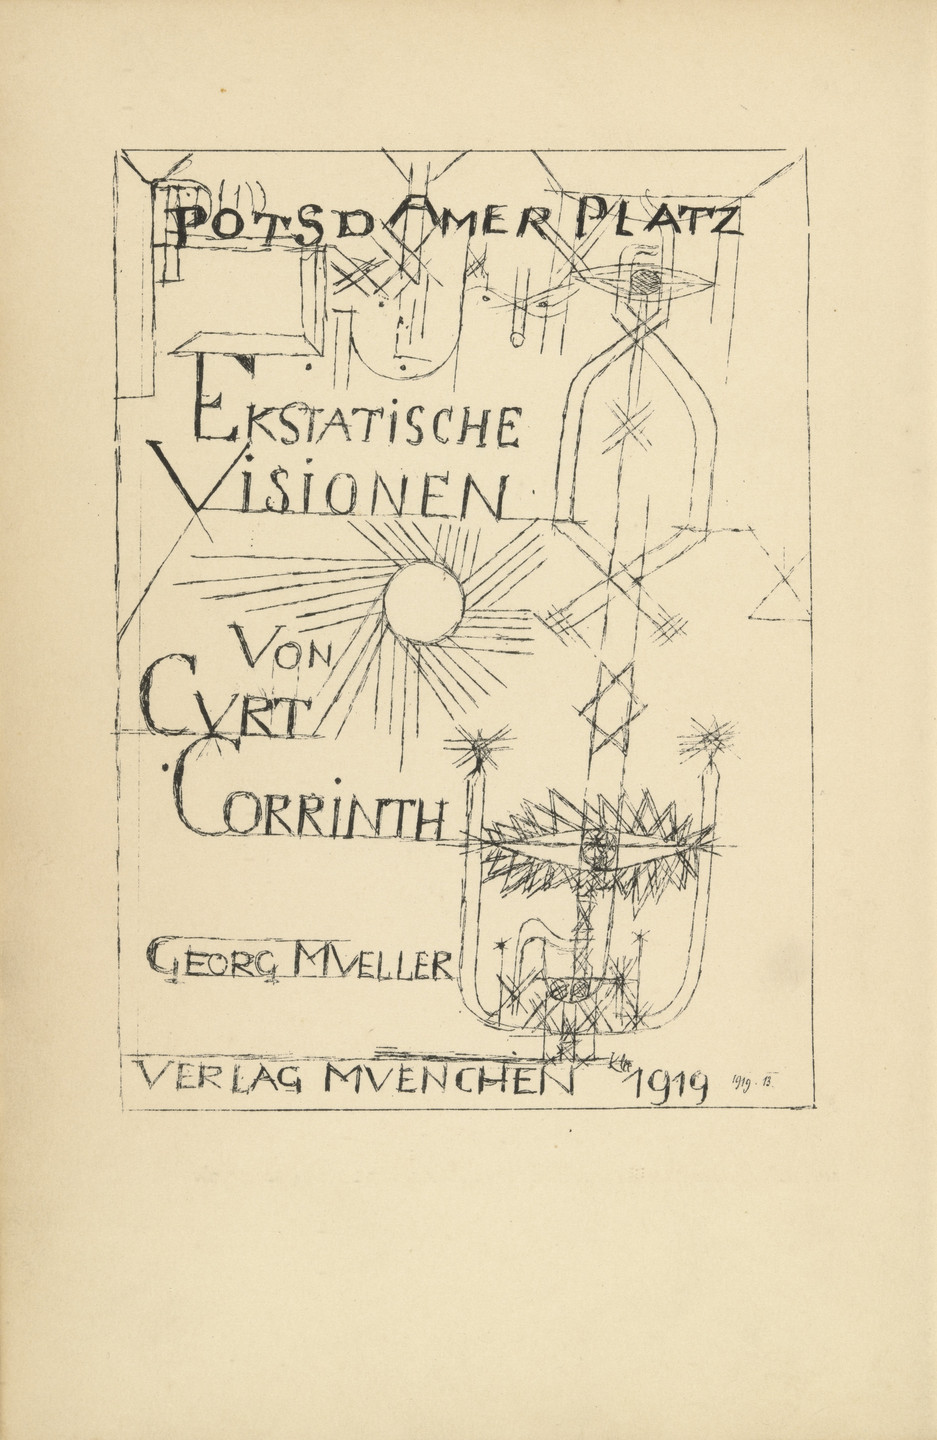 Paul Klee. Frontispiece (page 2) from Potsdamer Platz oder Die Nächte des neuen Messias. Ekstatische Visionen (Potsdamer Platz or The Nights of the New Messiah. Ecstatic Visions). 1919